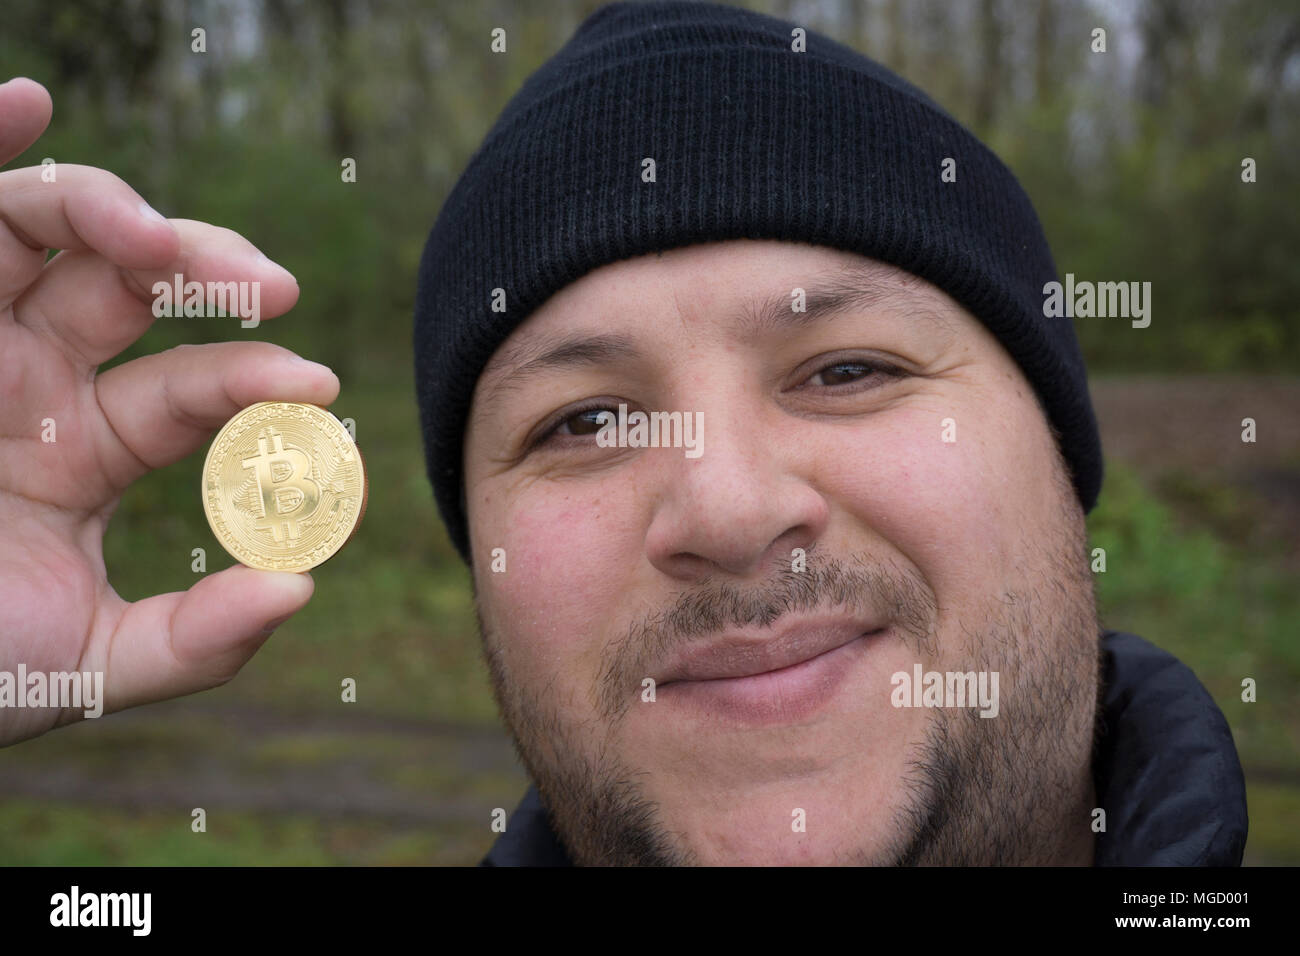 mad bitcoin lover with a gold coin in your hand , funny miner with BTC near the face - Stock Image